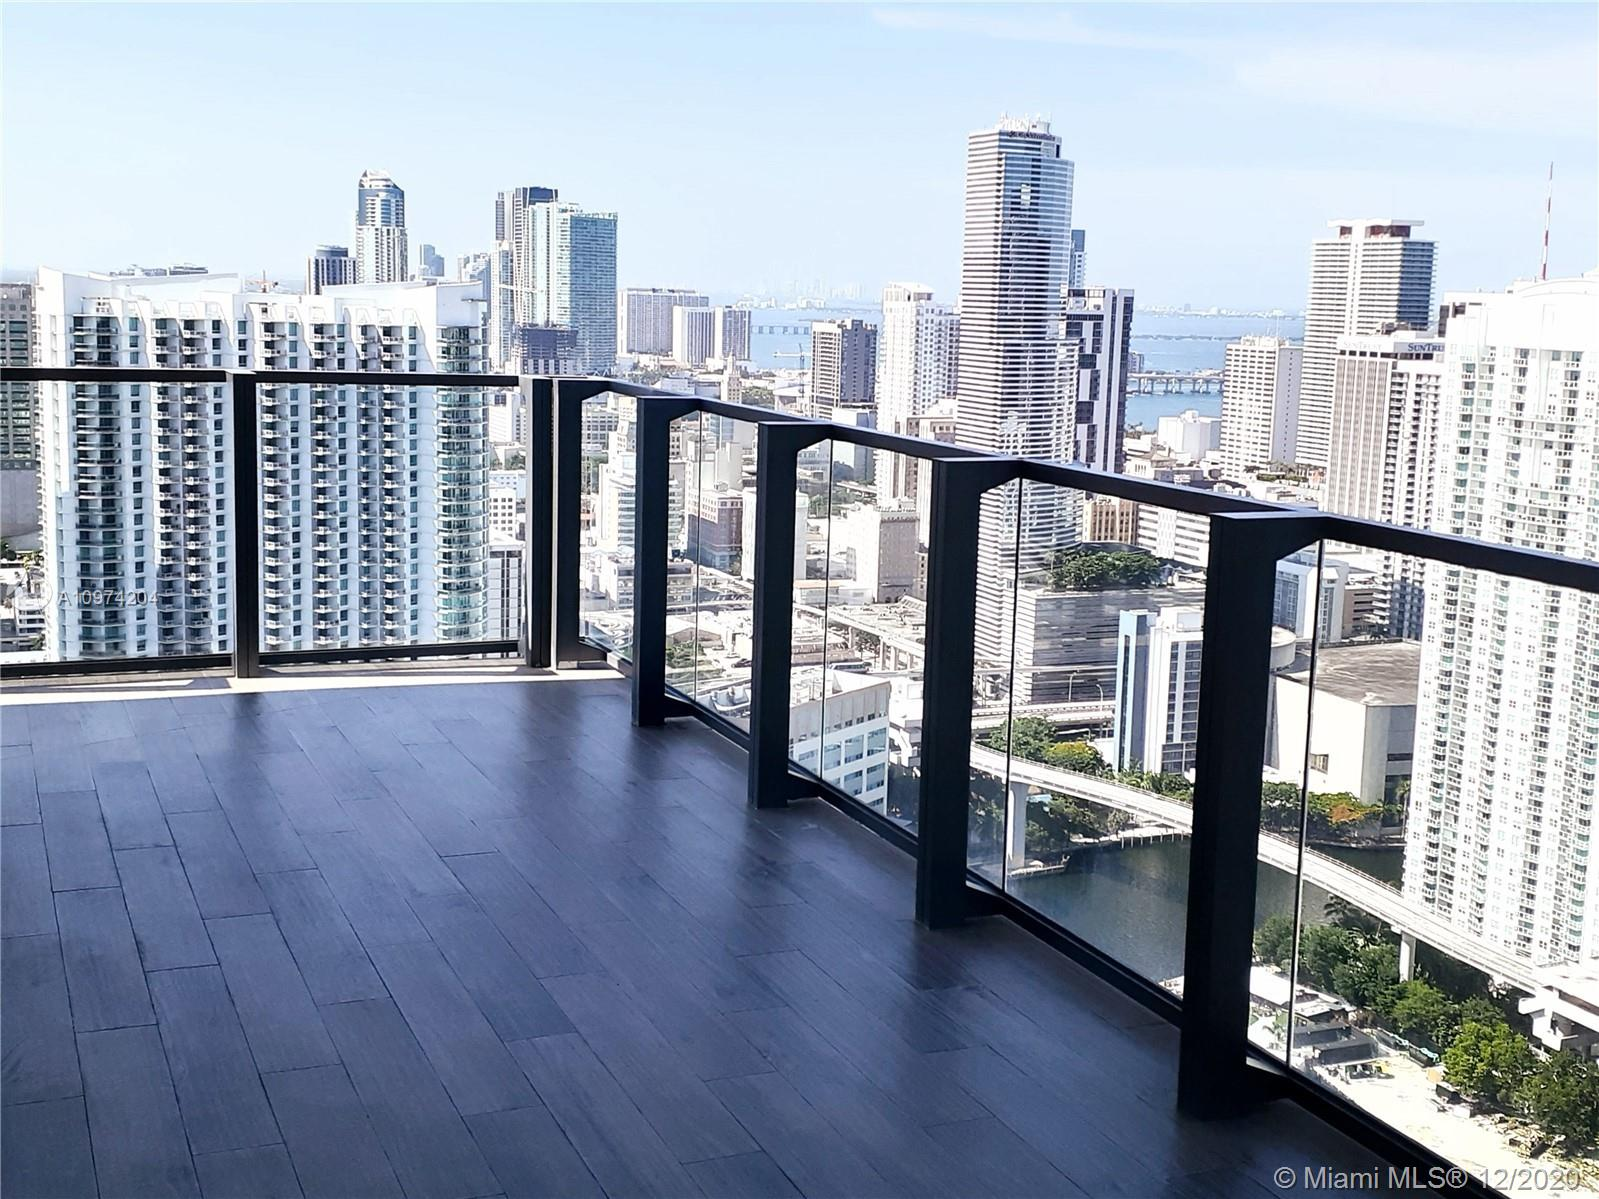 Rise Brickell City Centre #TS3811 - 88 SW 7th St #TS3811, Miami, FL 33130